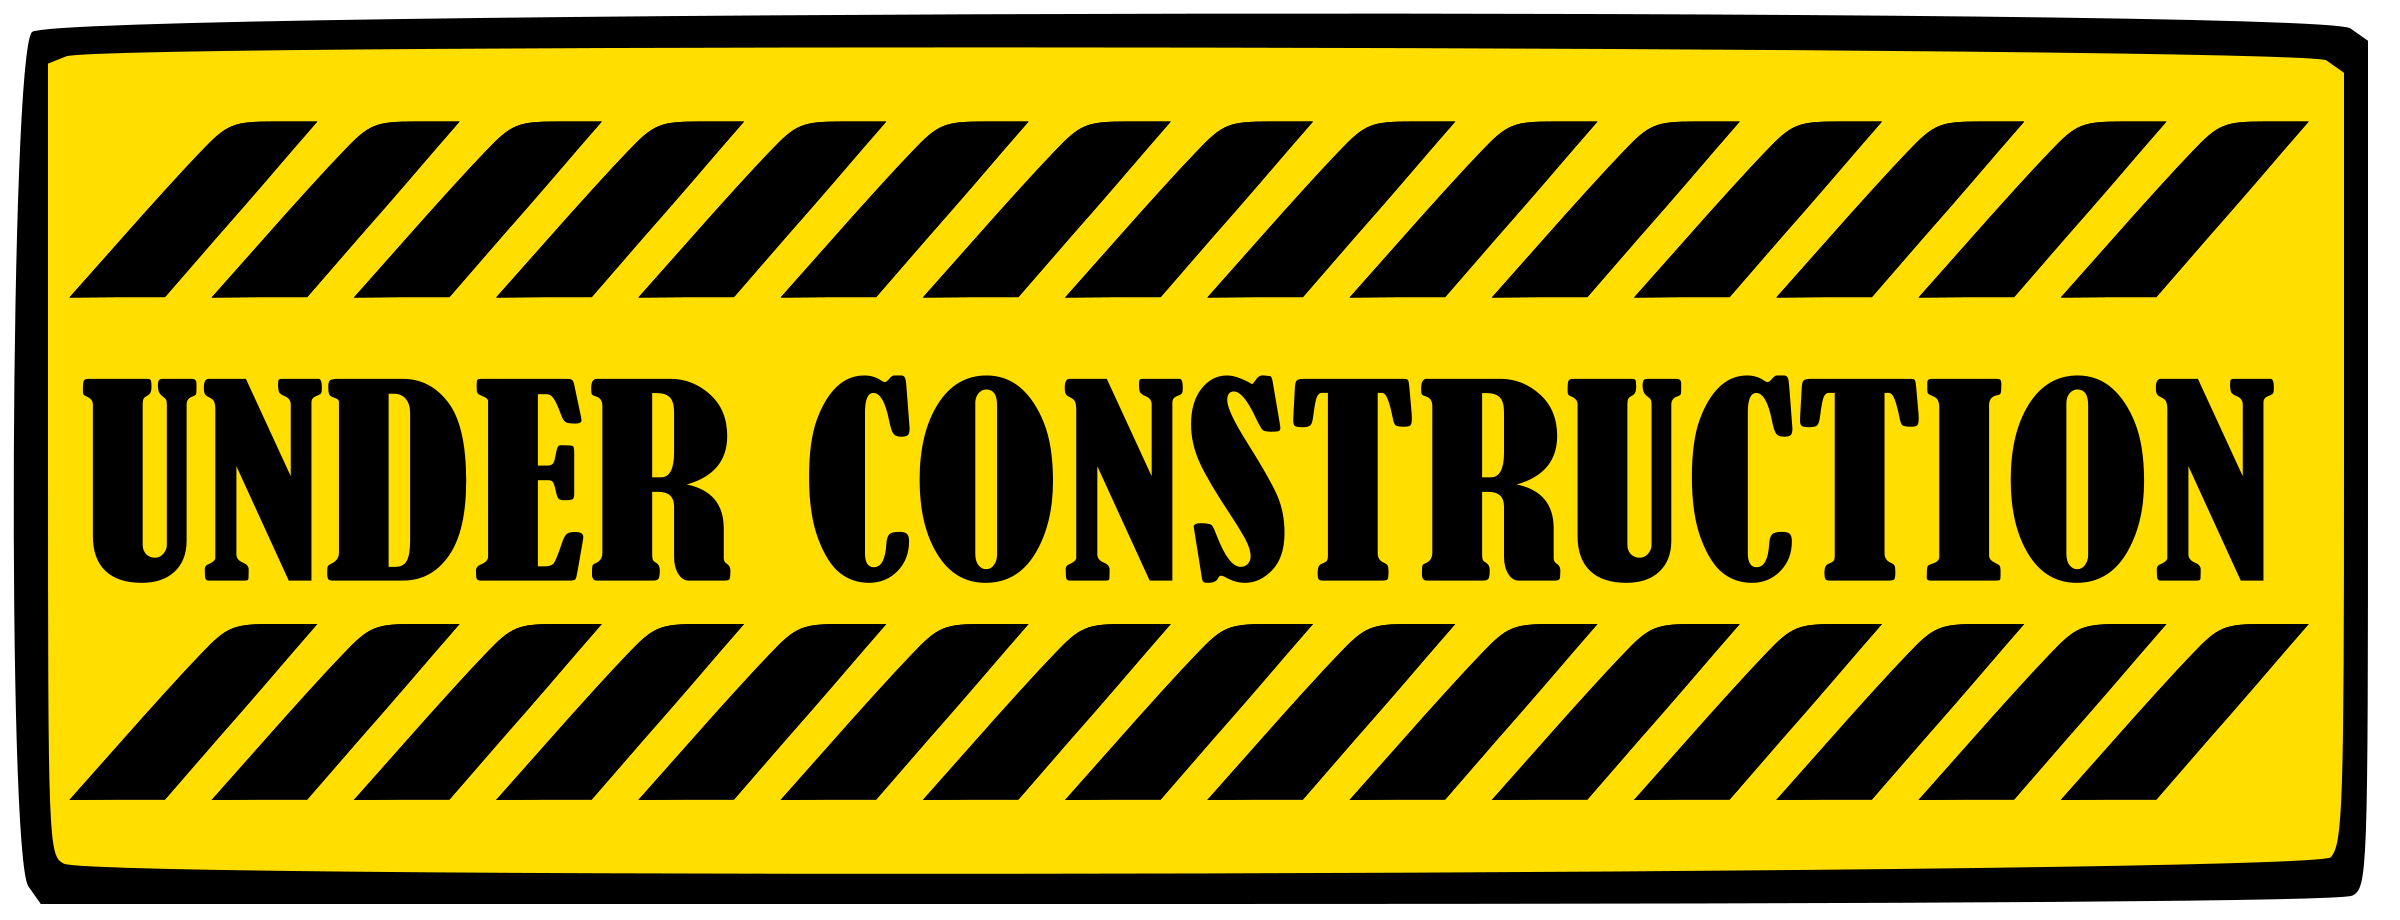 Free clipart under construction sign. Building gallery